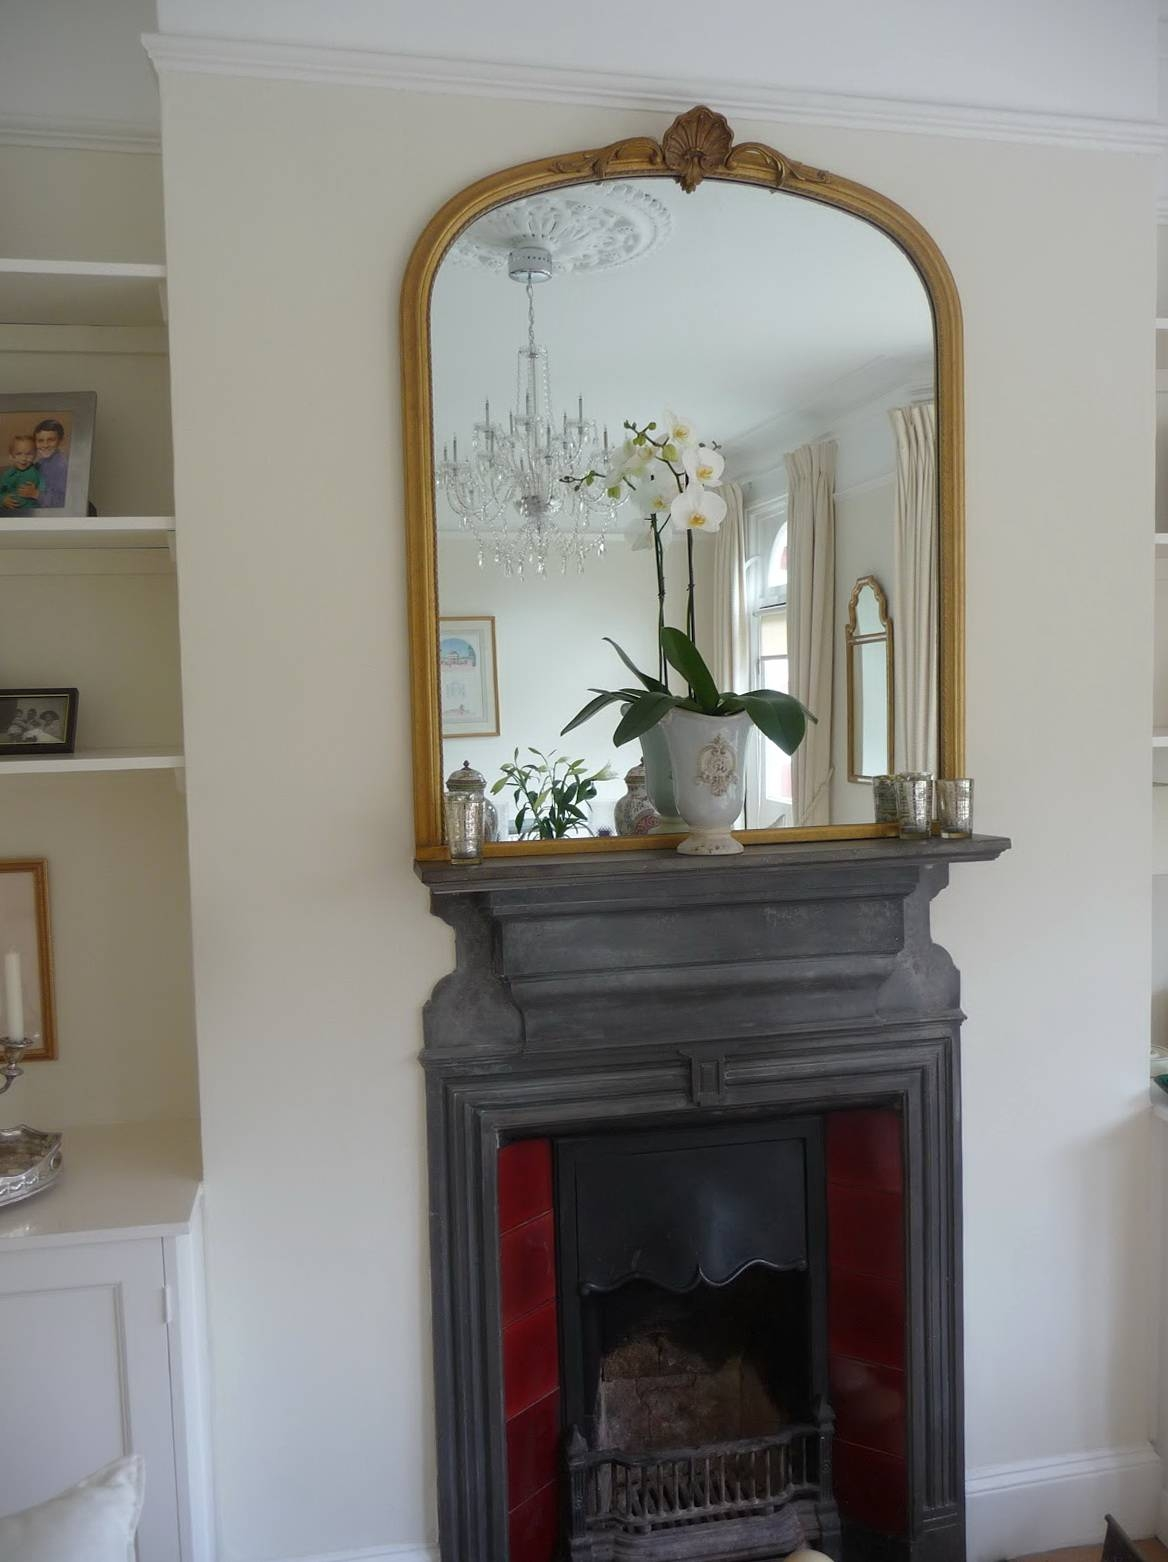 Decoration. Decorate Fireplace Using Wall Mirror Ideas intended for Gold Mantle Mirrors (Image 5 of 15)